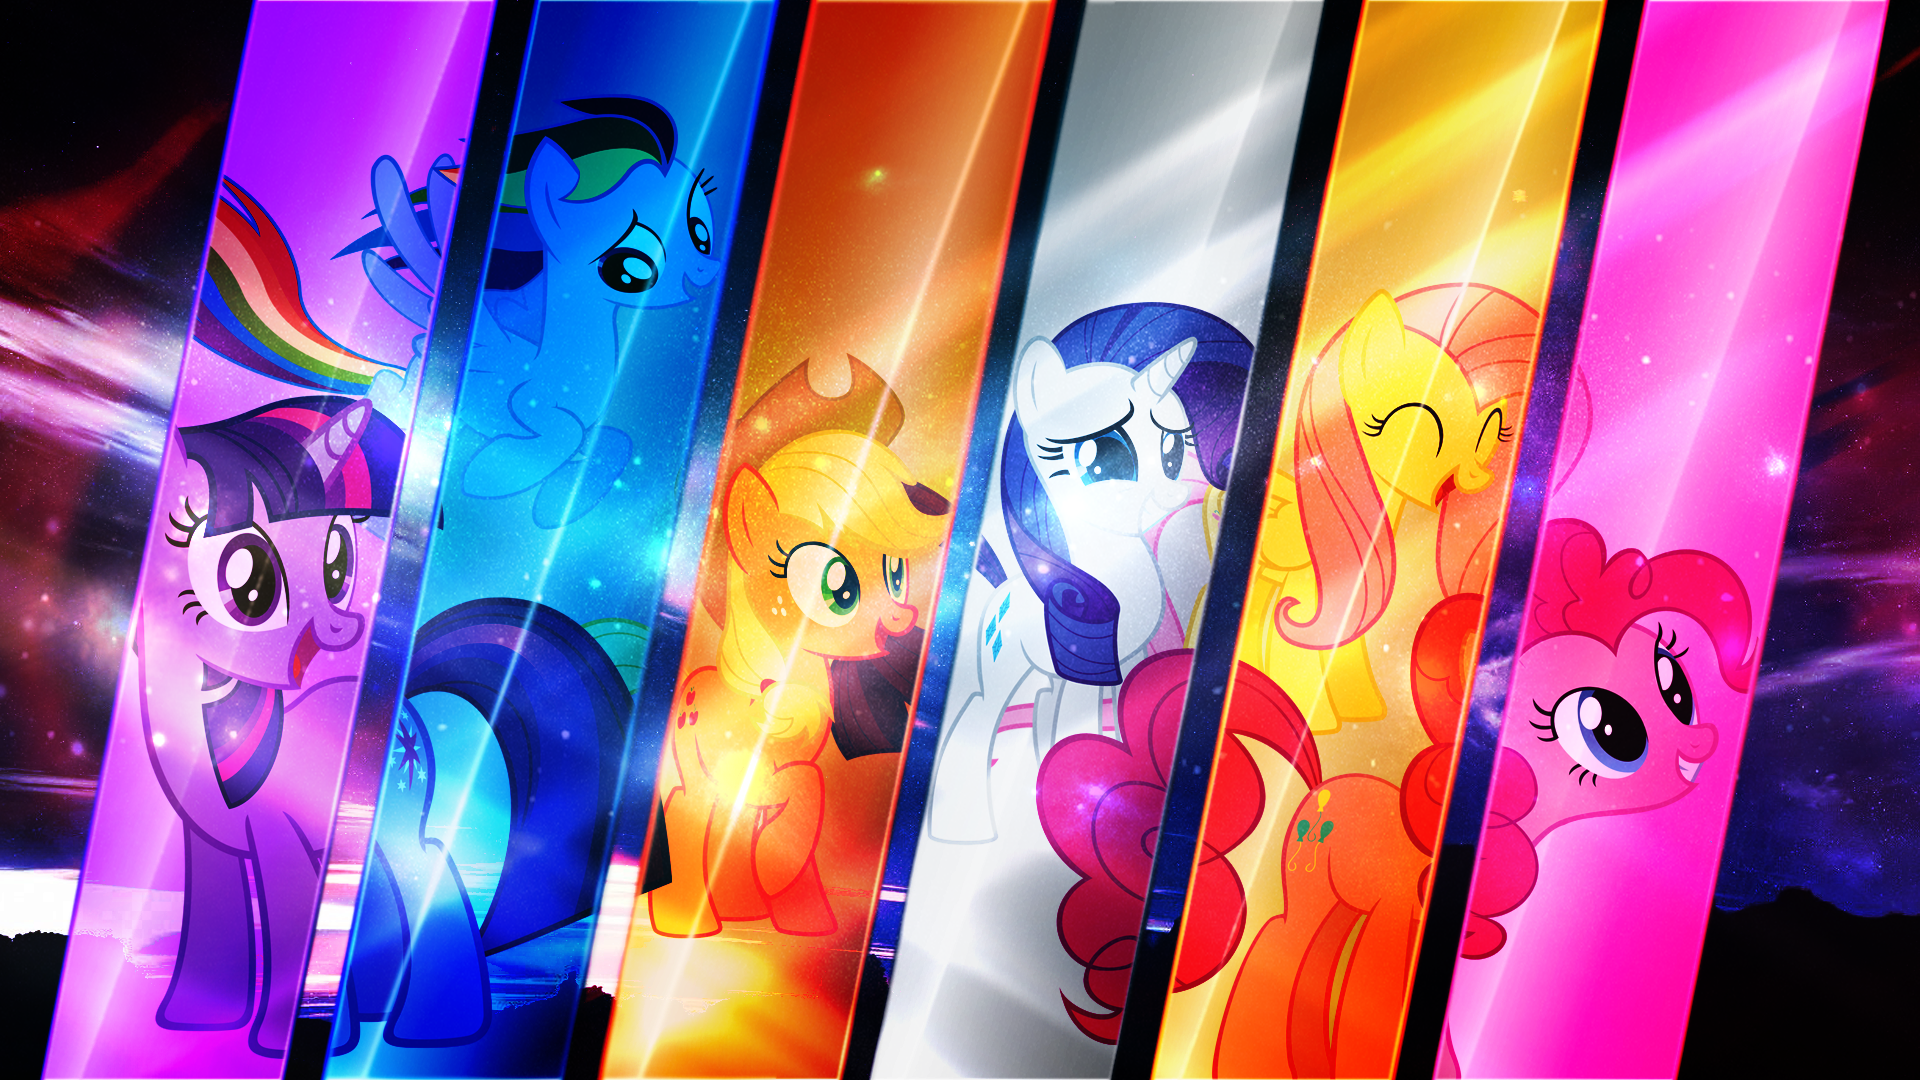 Wallpapers Bronycom T Shirts and Apparel for Bronies and fans 1920x1080